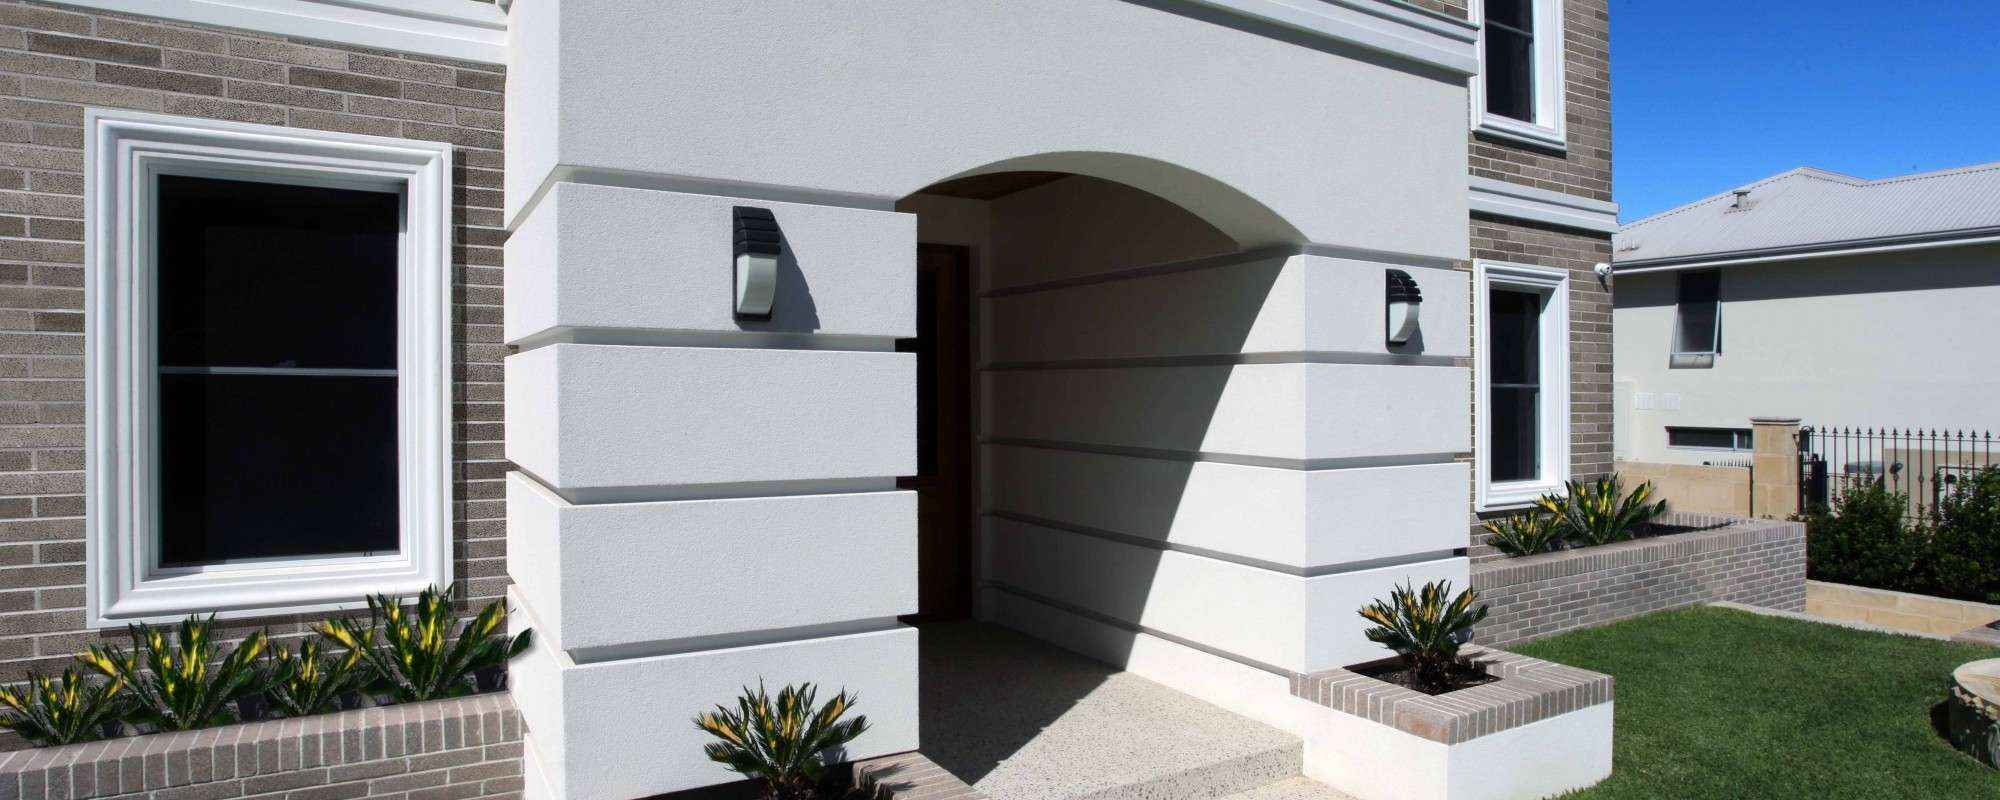 Aerostone mouldings used to improve the look of house front door.